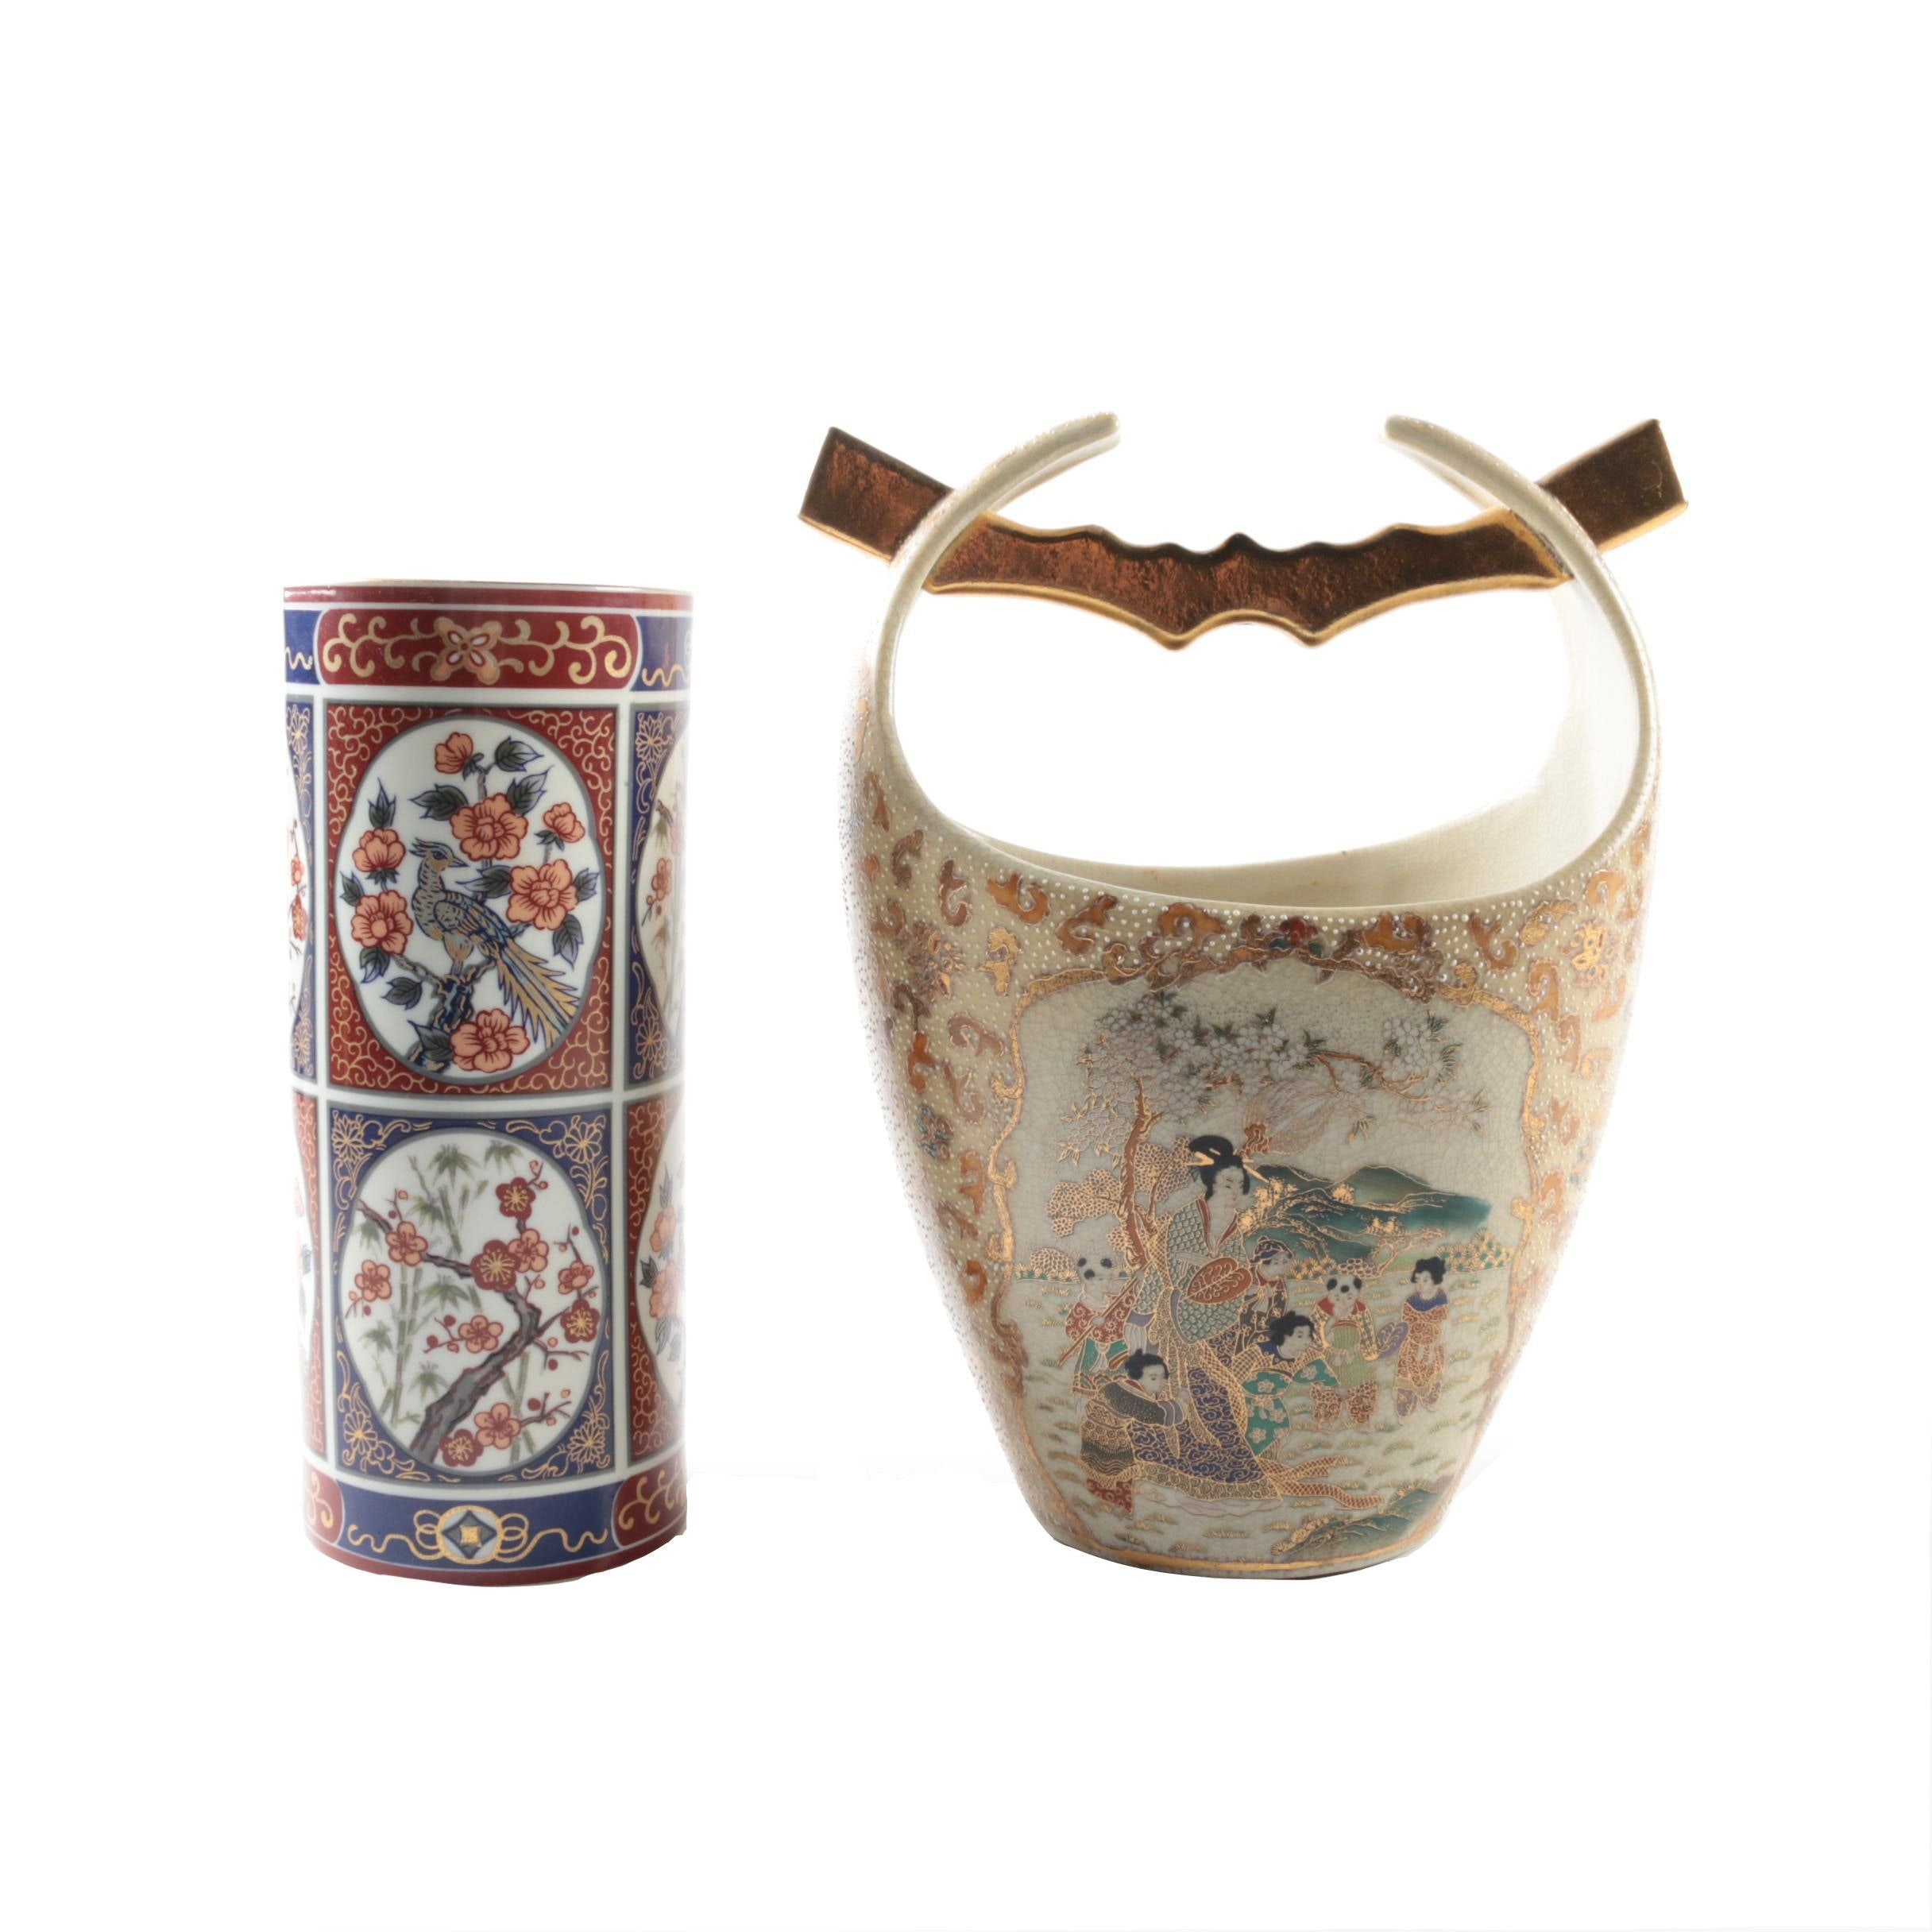 Chinese Imari Style Vase and Japanese Water Bucket